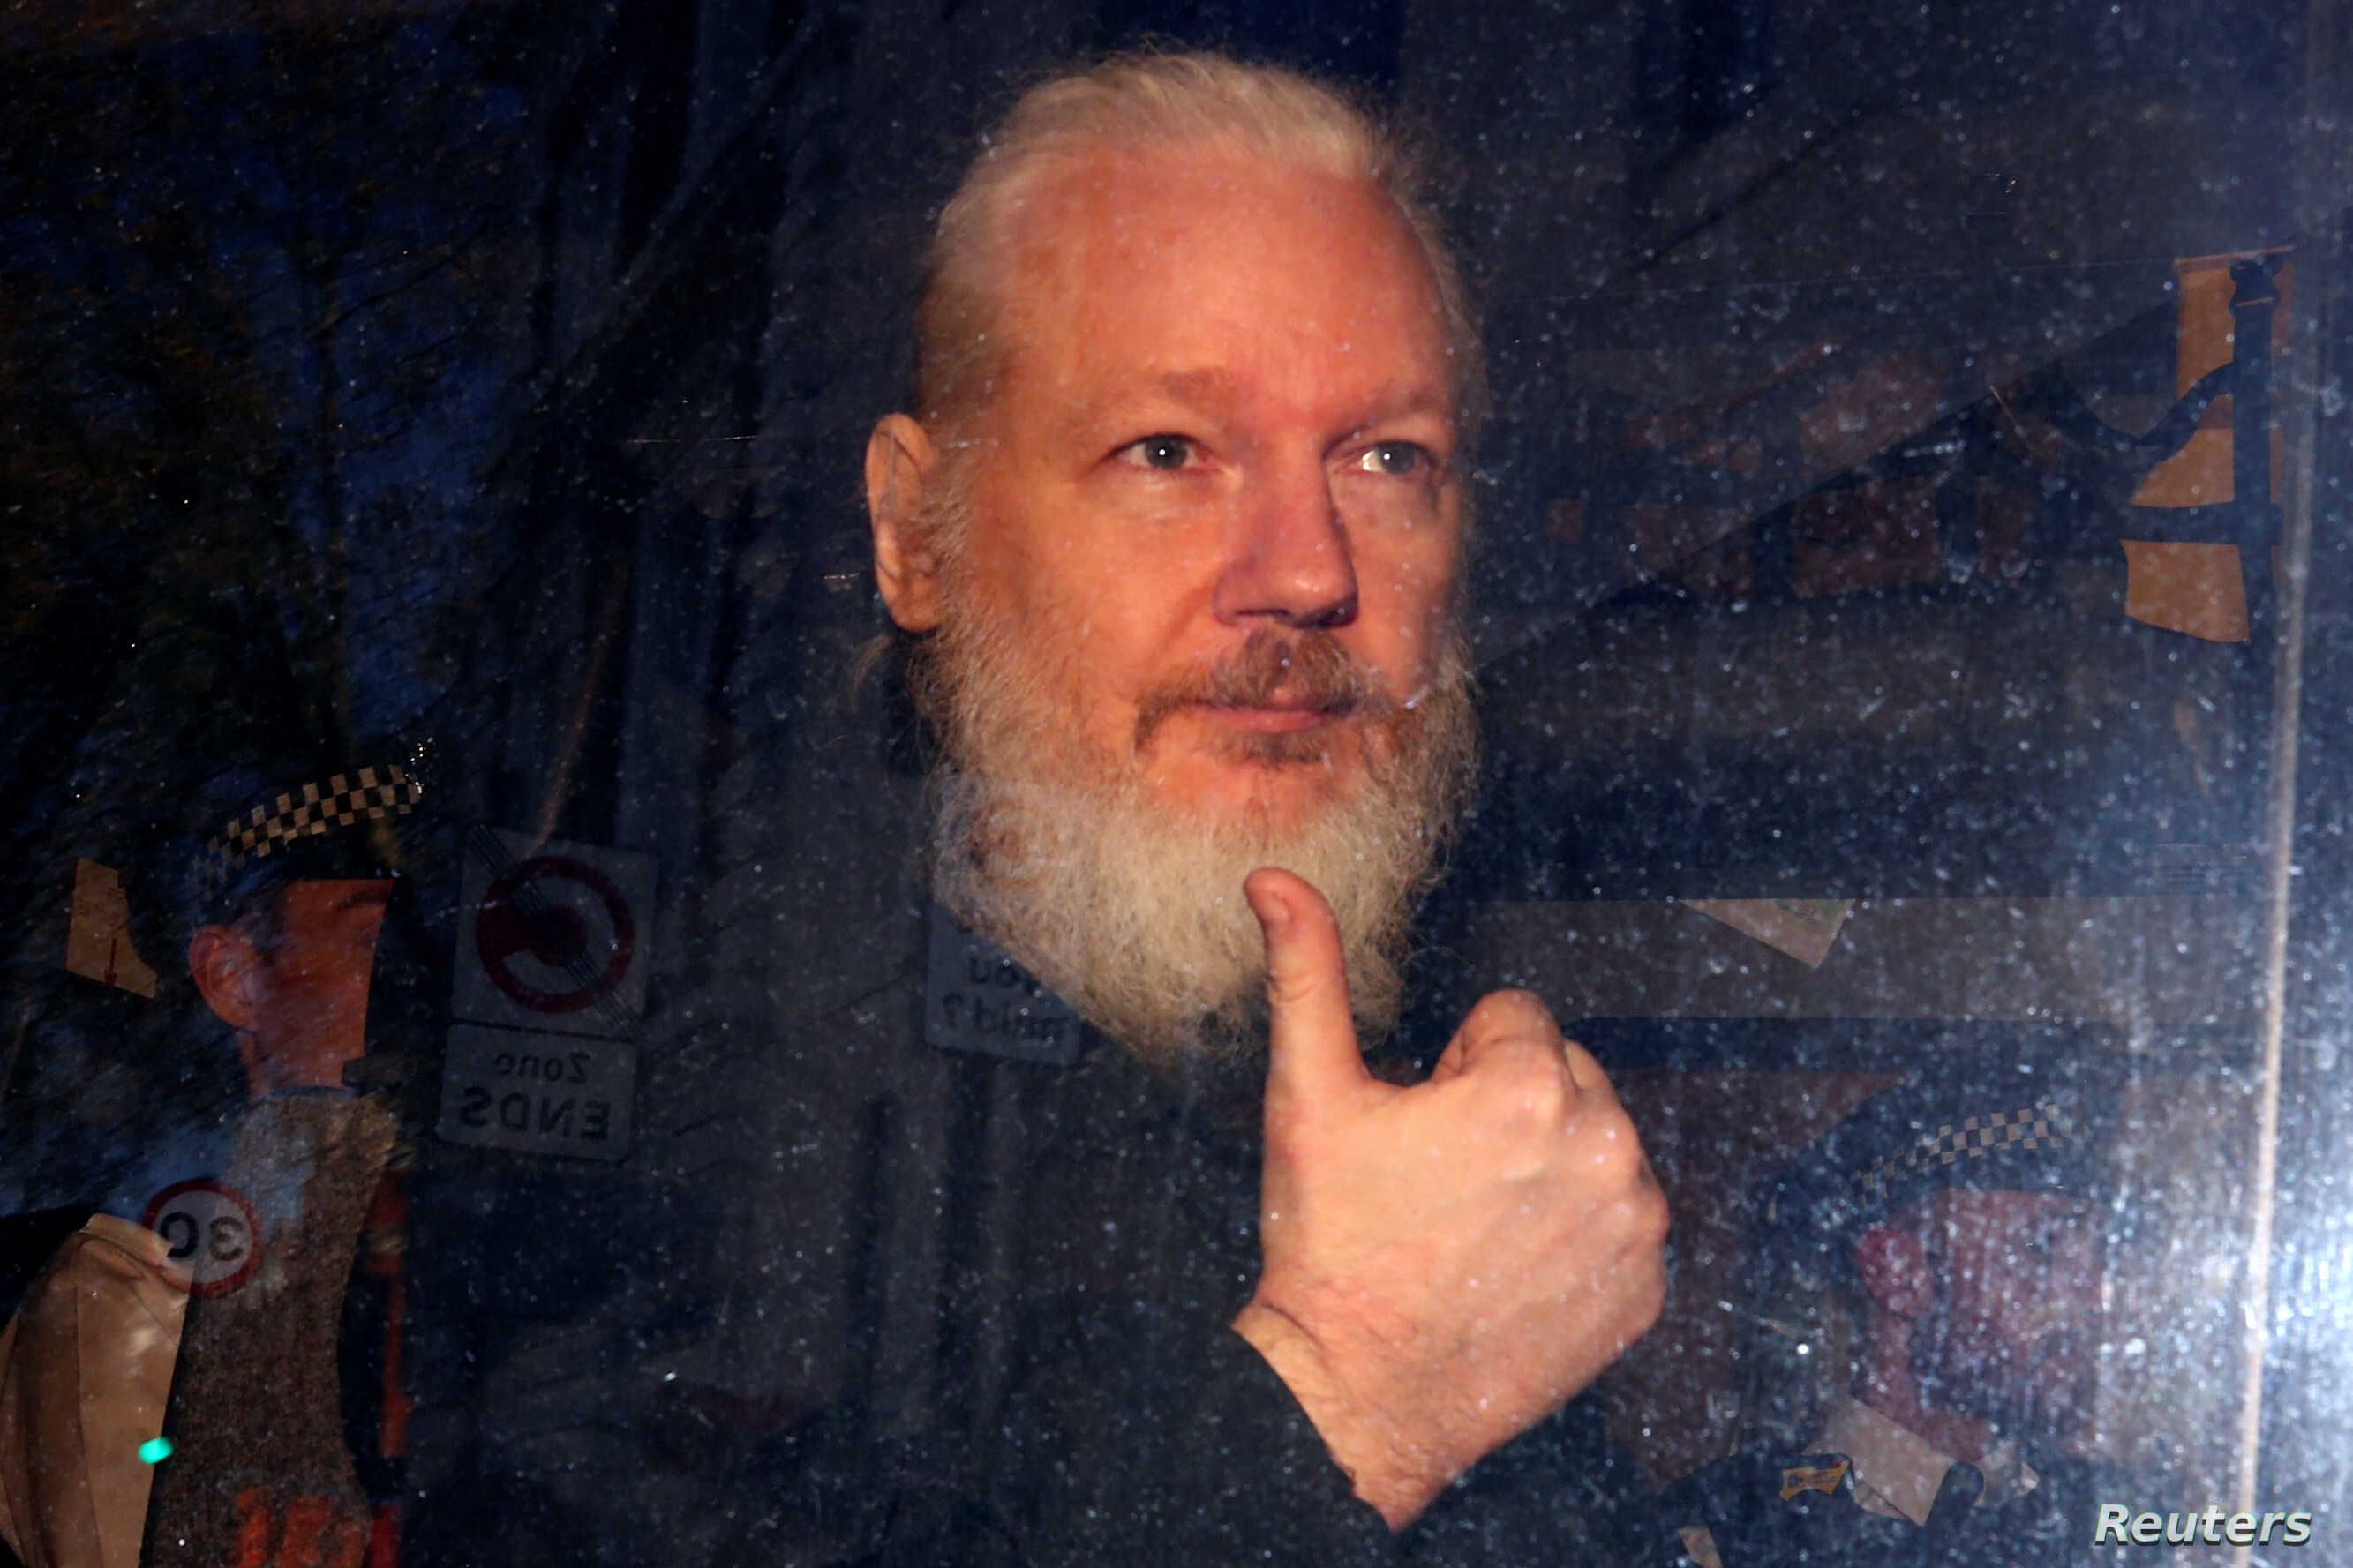 U.S. submits extradition request for WikiLeaks founder Julian Assange